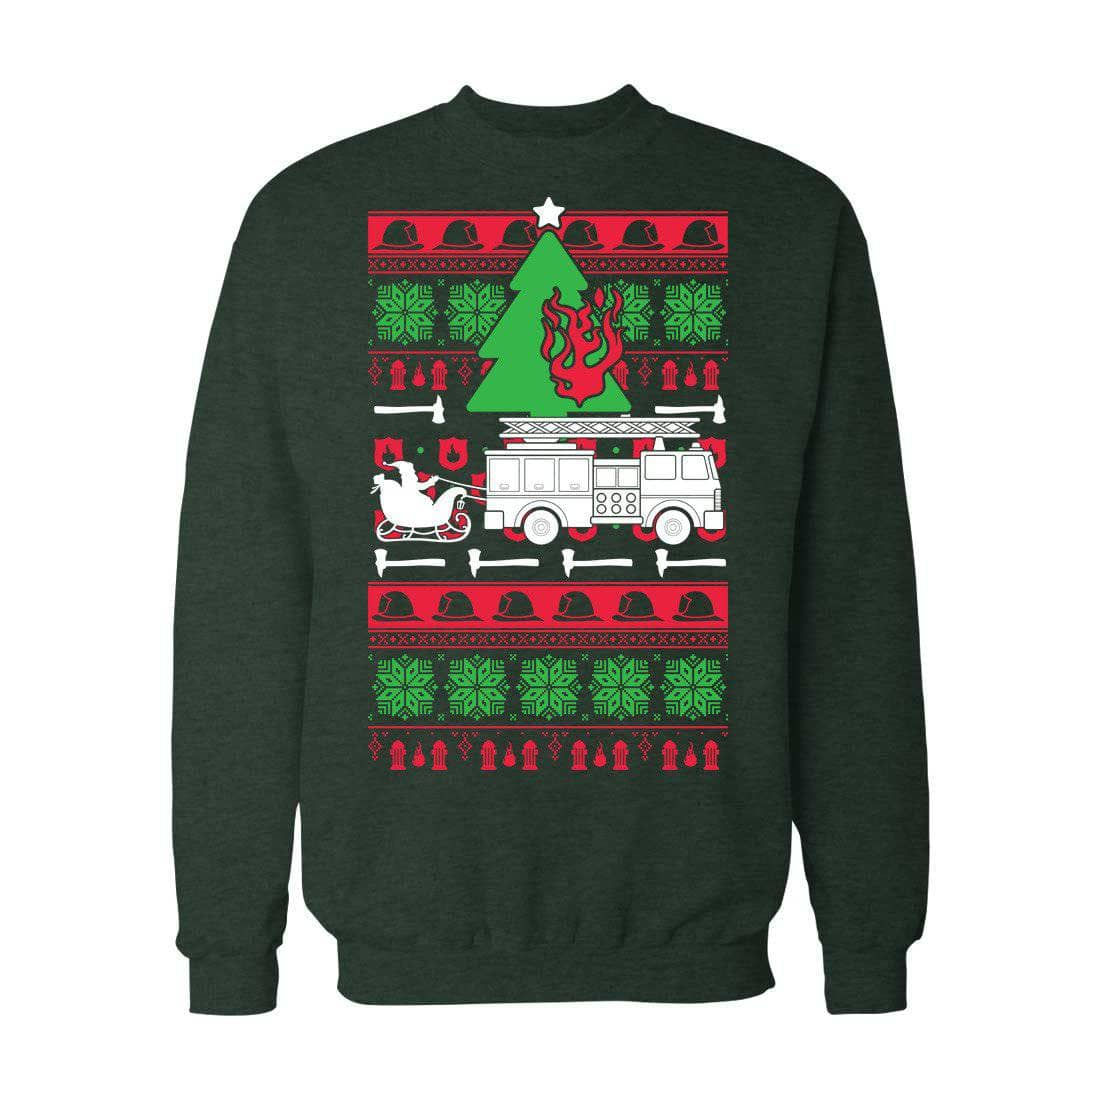 Firefighter Christmas Shirt.Firefighter Christmas Firefighters L E O And Emergency T